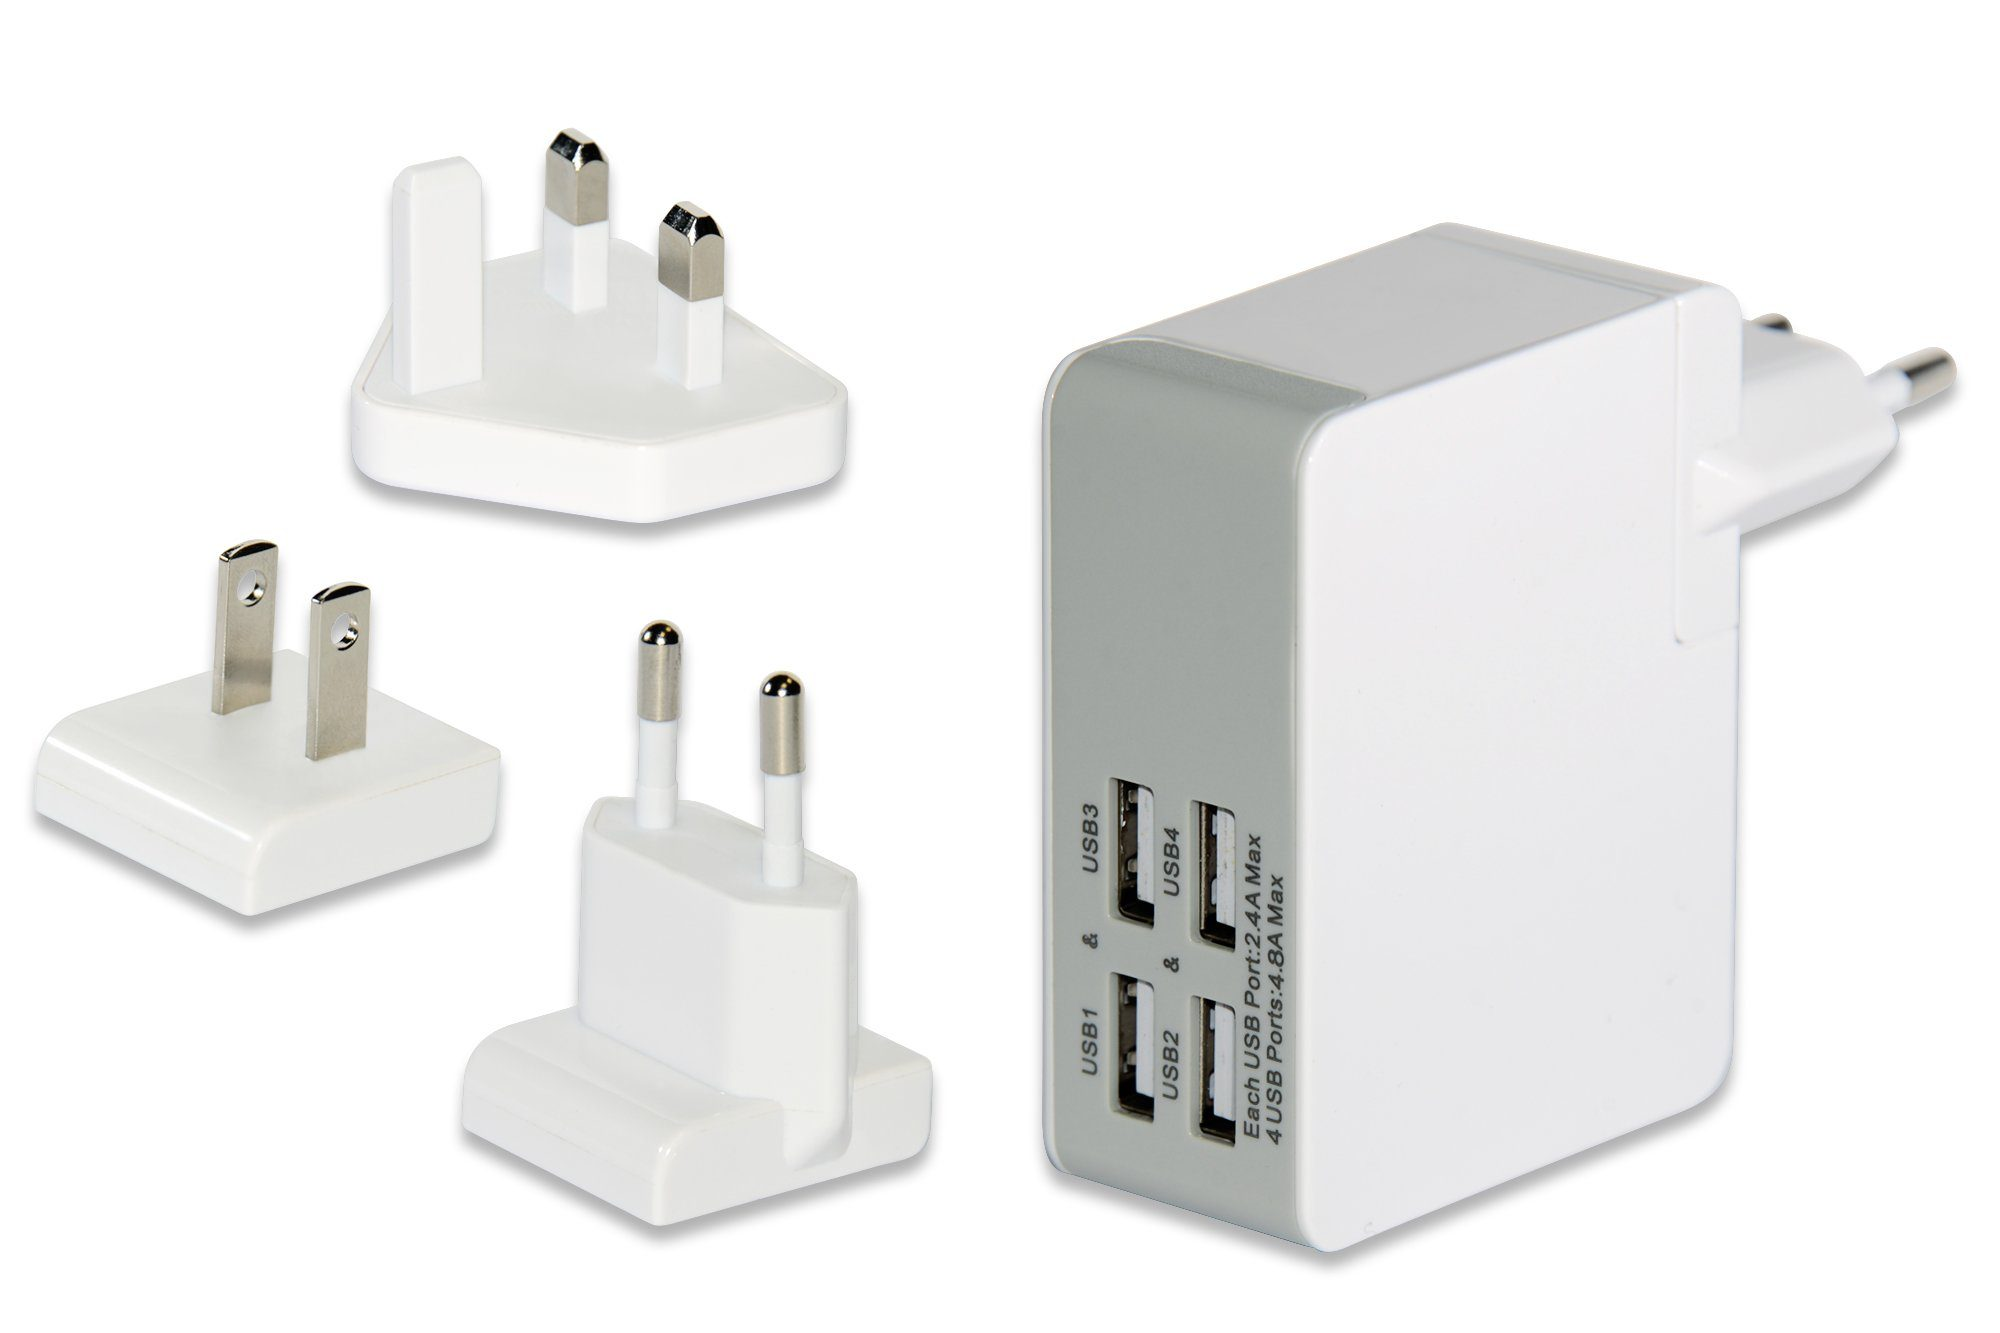 Ednet USB »4 Port USB Reise-Ladeadapter Set«